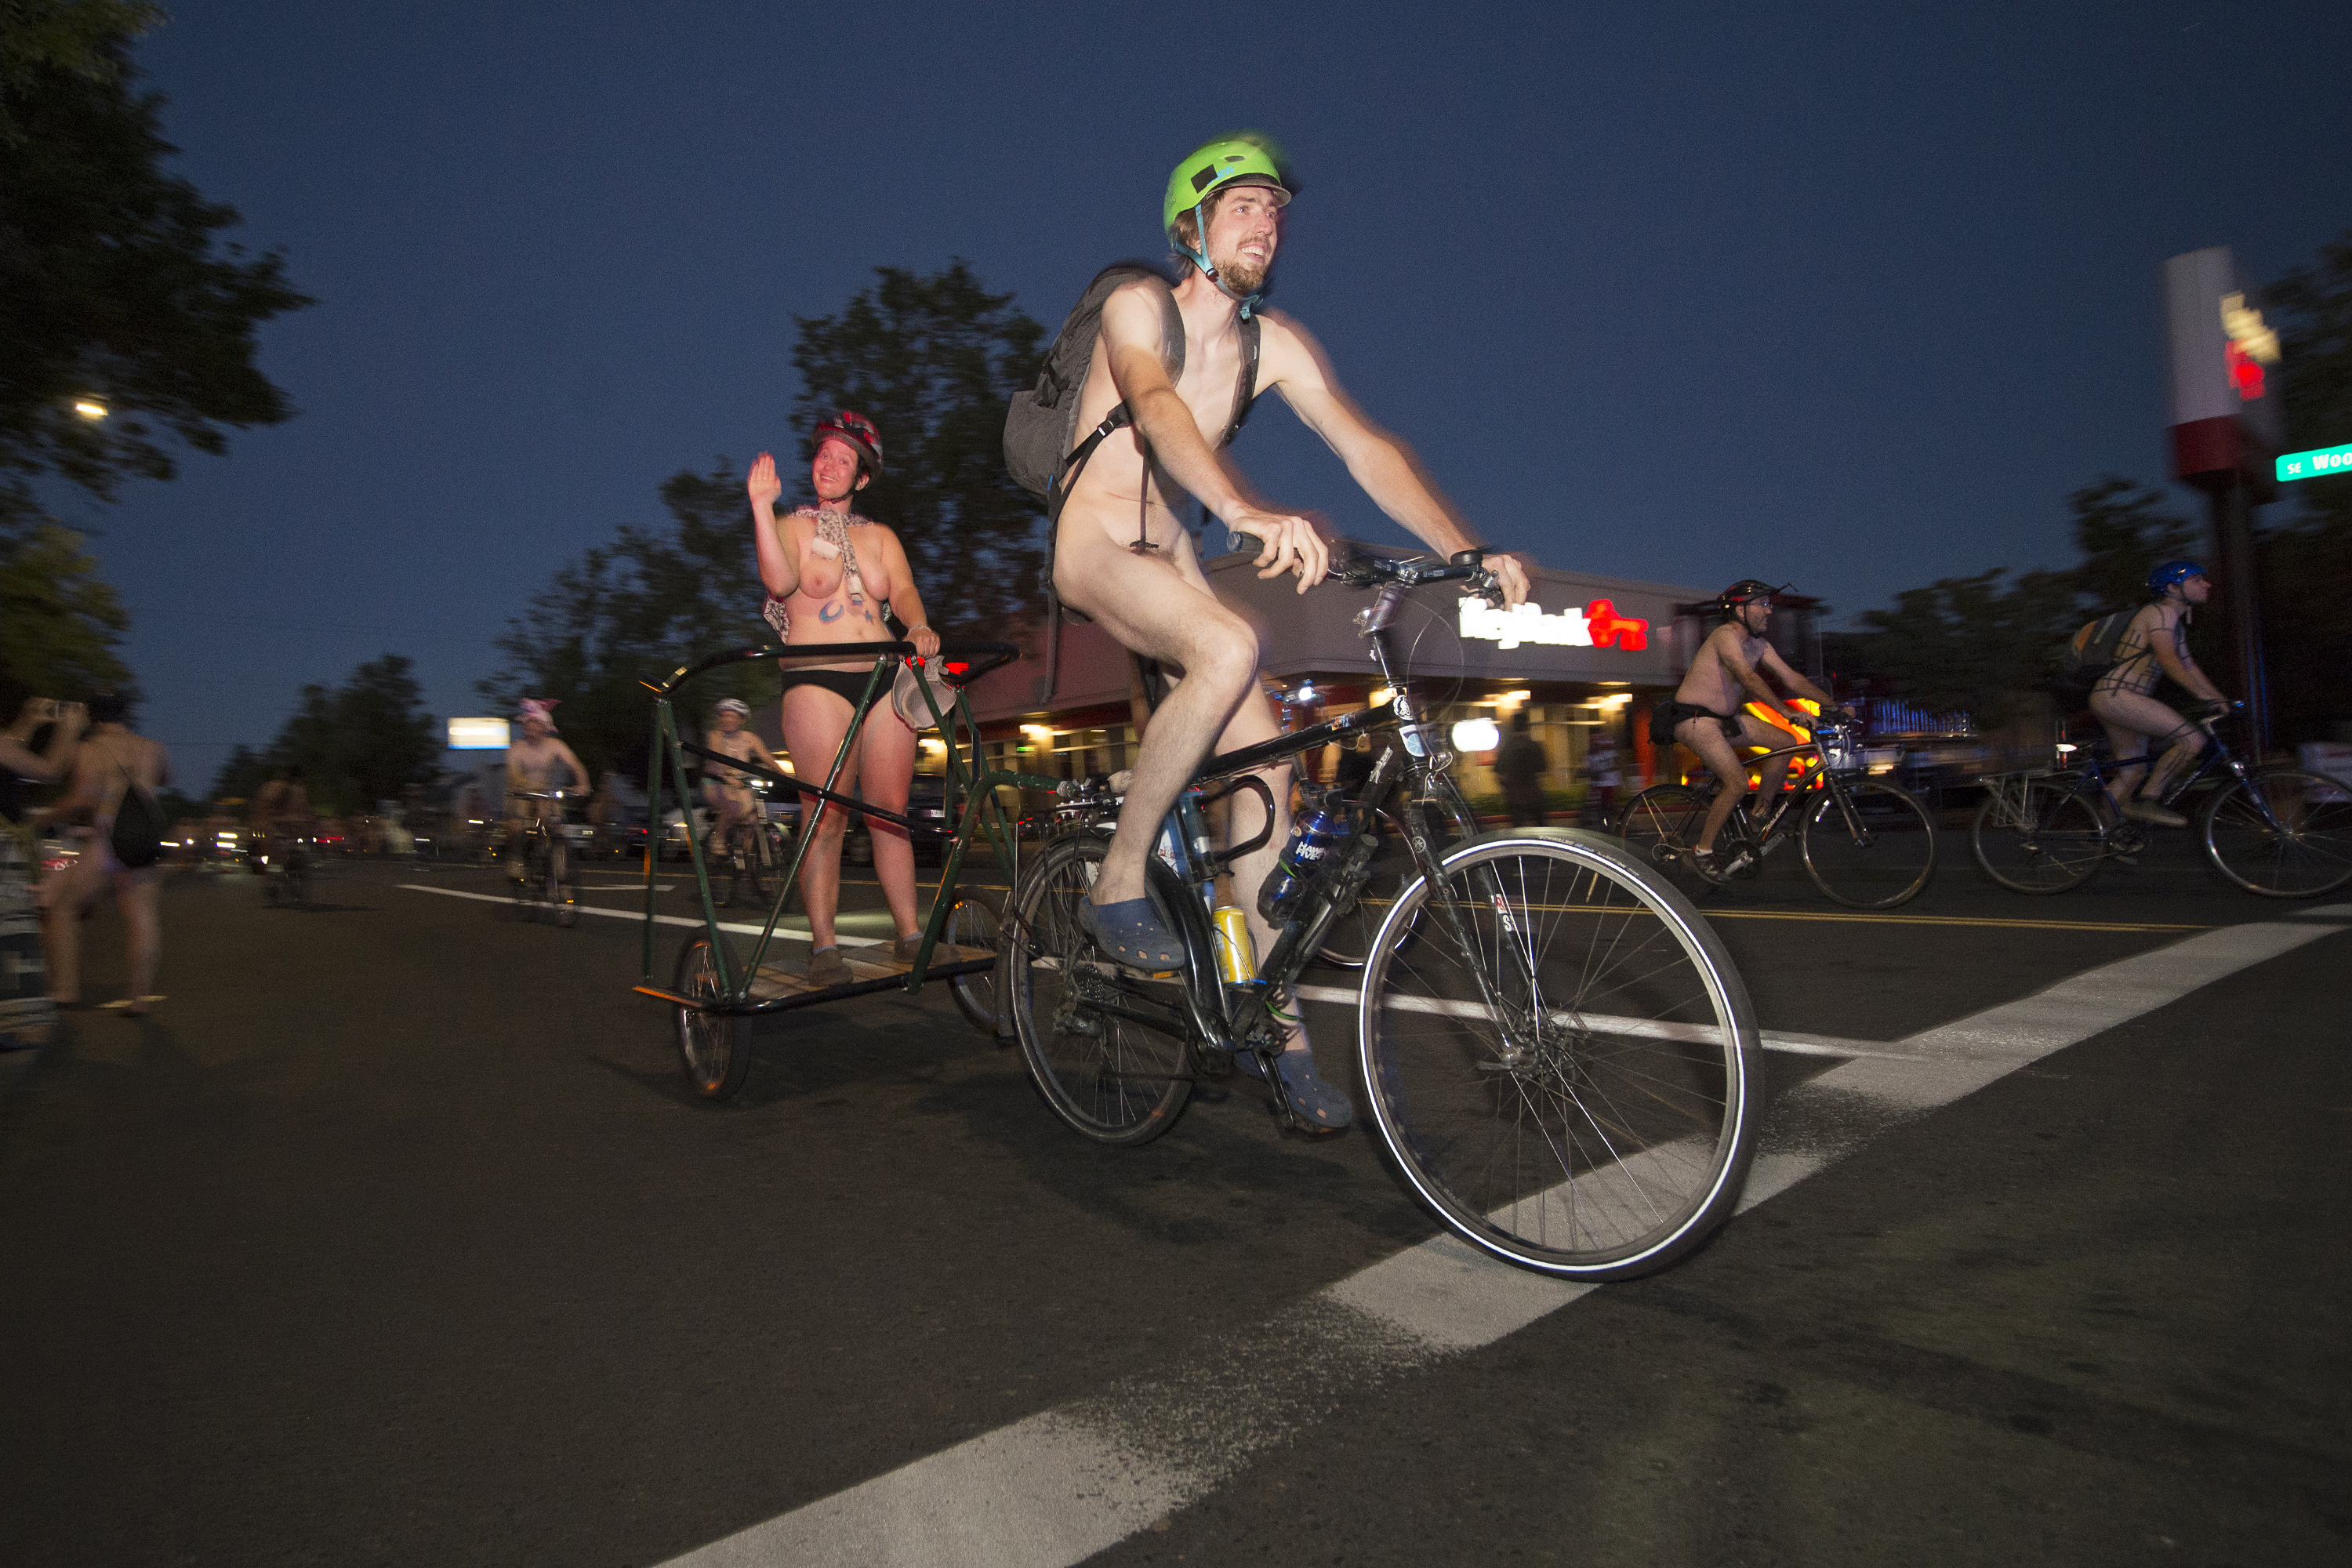 WNBR_WorldNakedBikeRide2016_JeffWalls_DSC4420